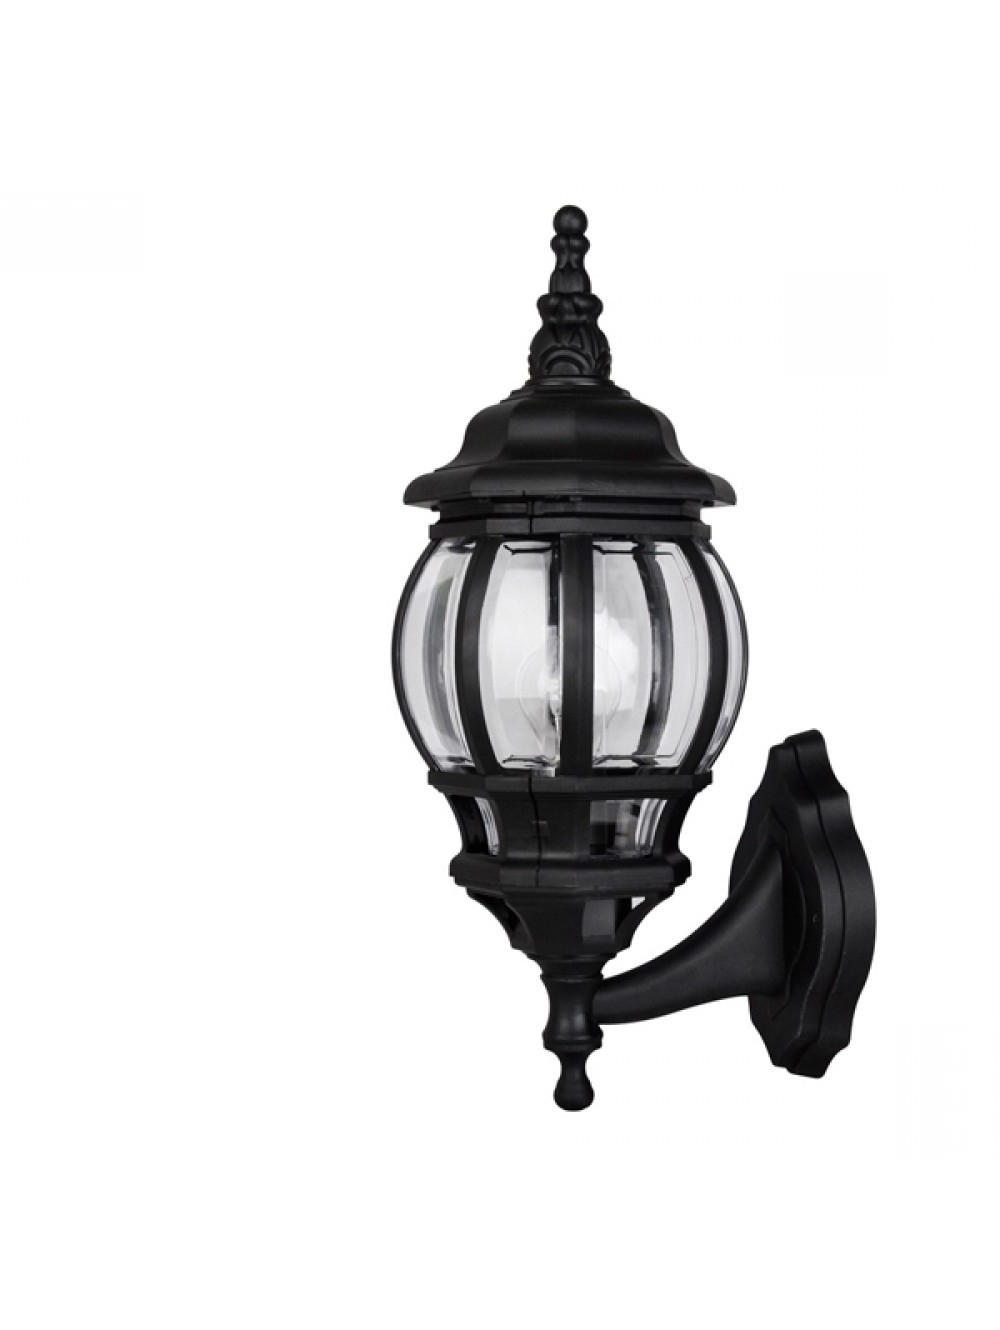 Ip44 Windsor Outdoor Up / Down Wall Lantern Pertaining To Most Recent Outdoor Mains Lanterns (Gallery 19 of 20)